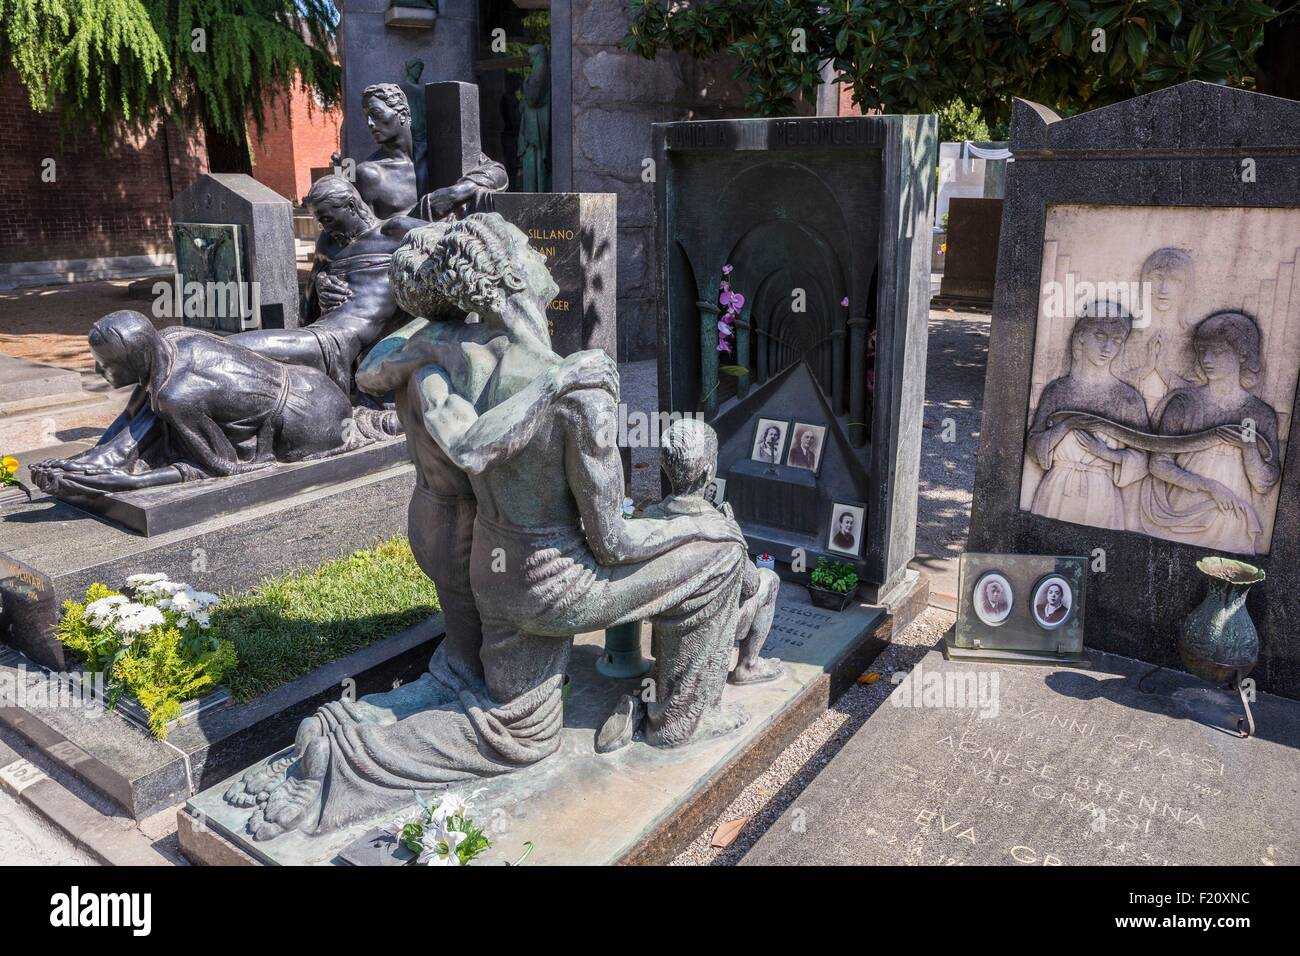 Italy, Lombardy, Milan, the monumental cemetery - Stock Image